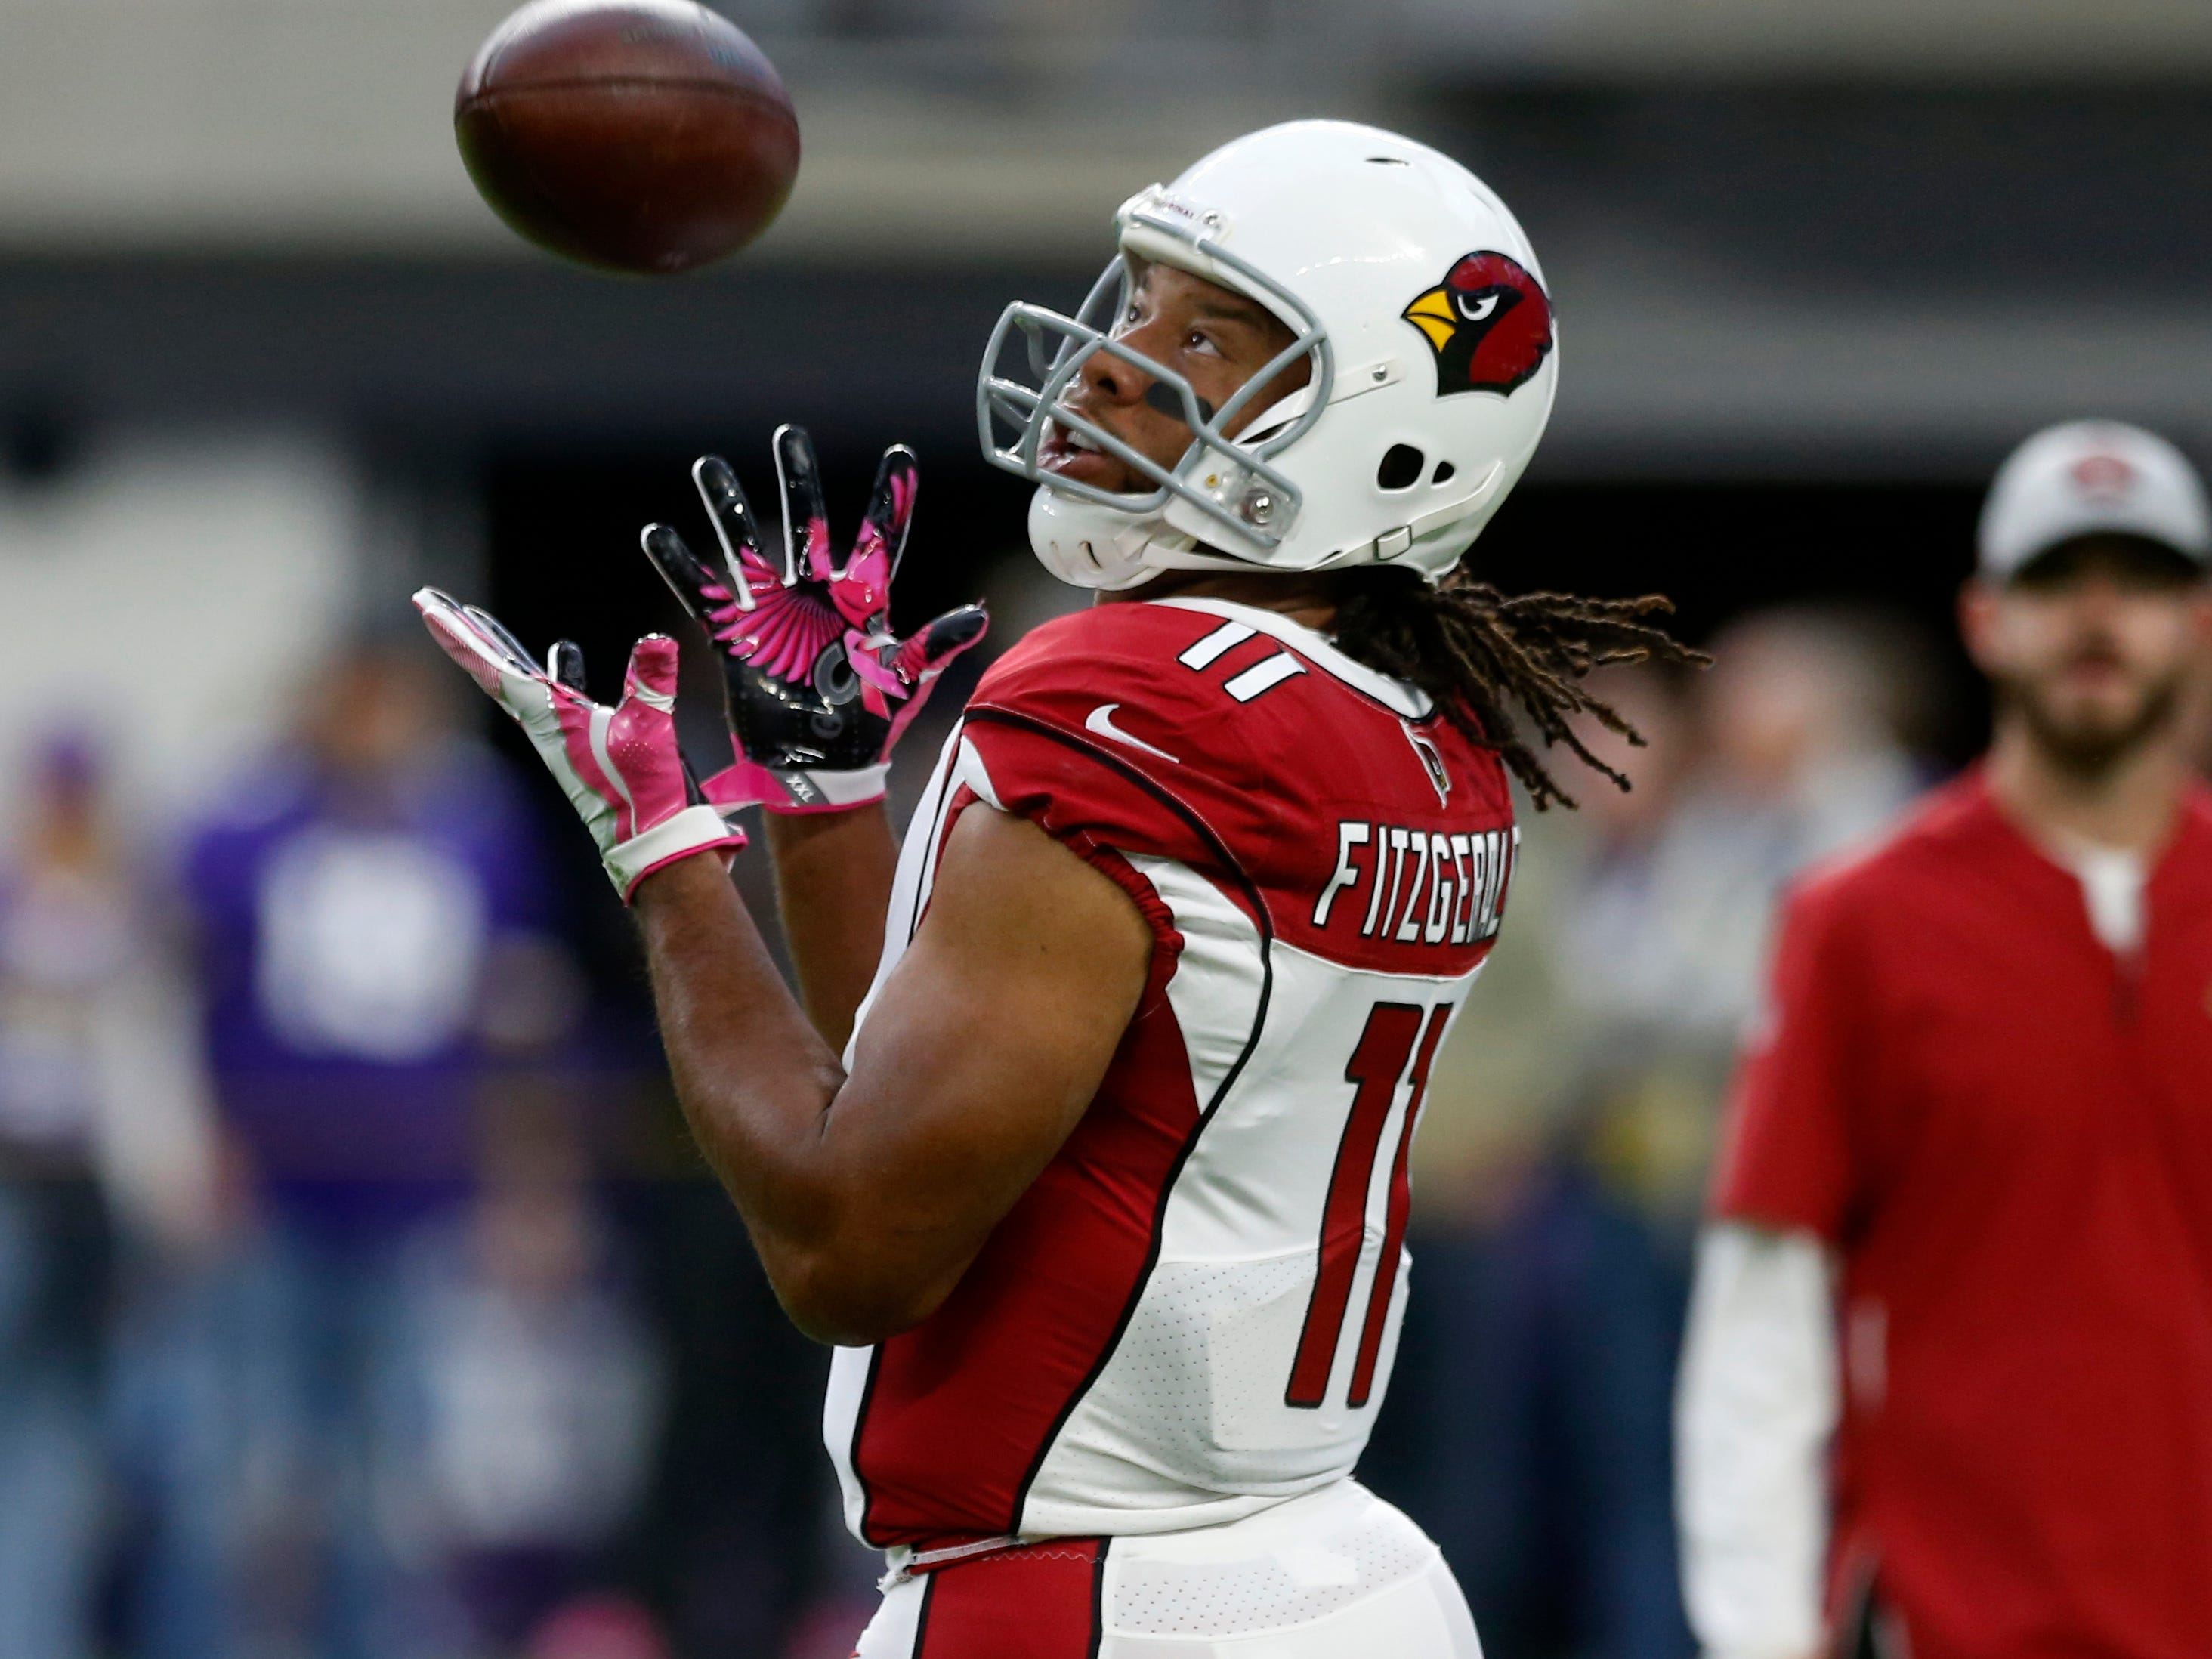 Arizona Cardinals wide receiver Larry Fitzgerald warms up before an NFL football game against the Minnesota Vikings, Sunday, Oct. 14, 2018, in Minneapolis. (AP Photo/Jim Mone)